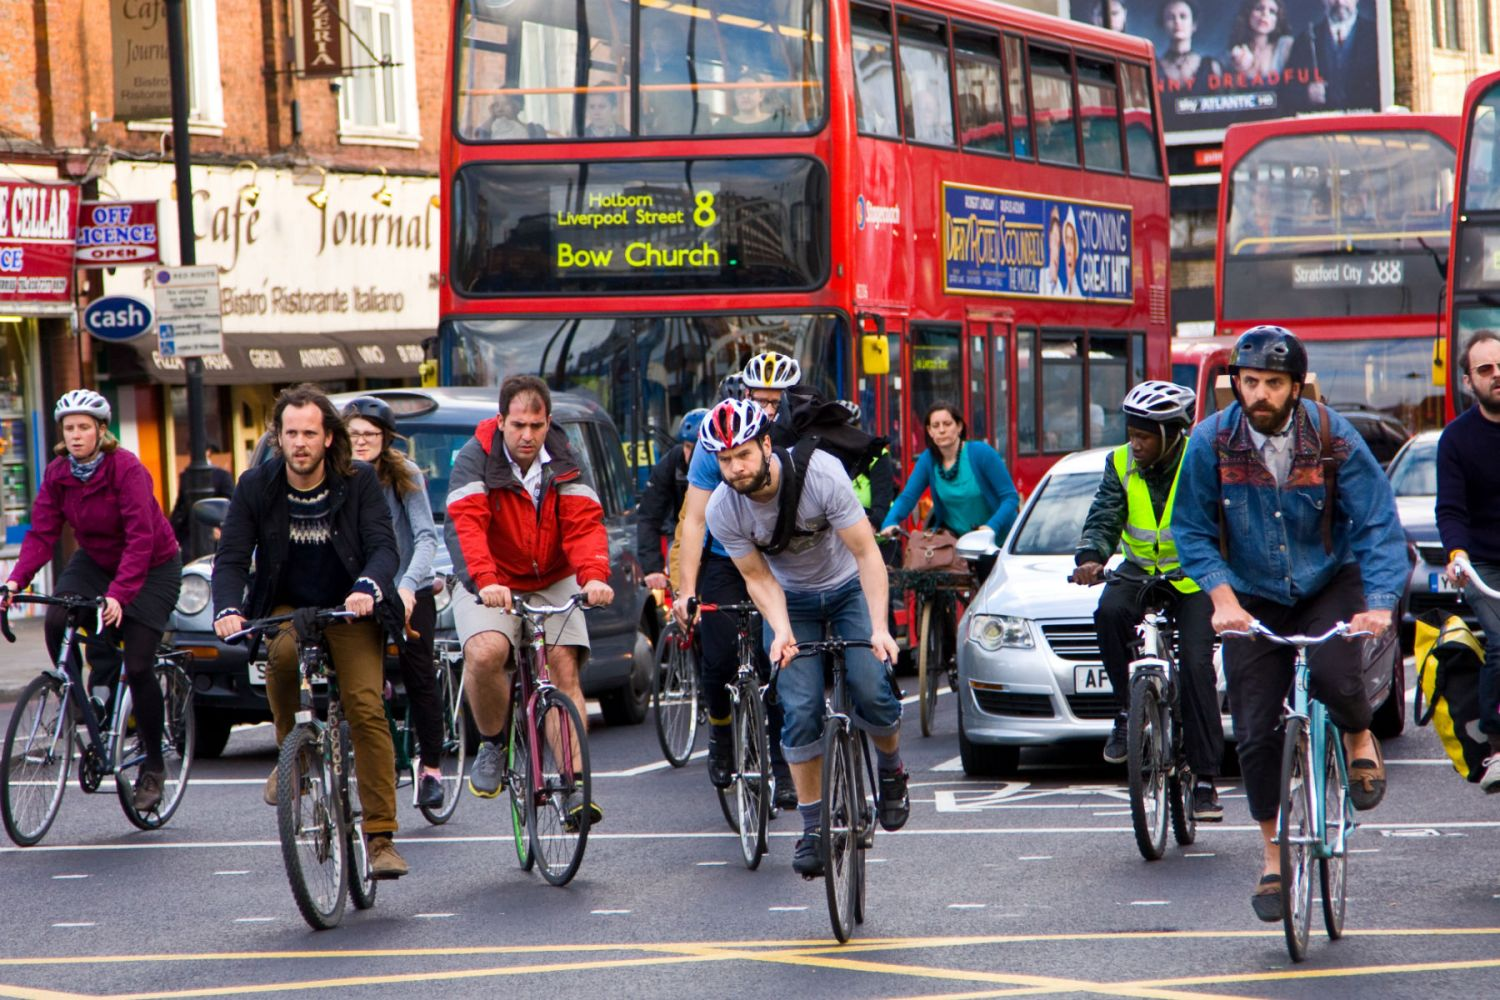 Should 'death by dangerous cycling' be an offence?